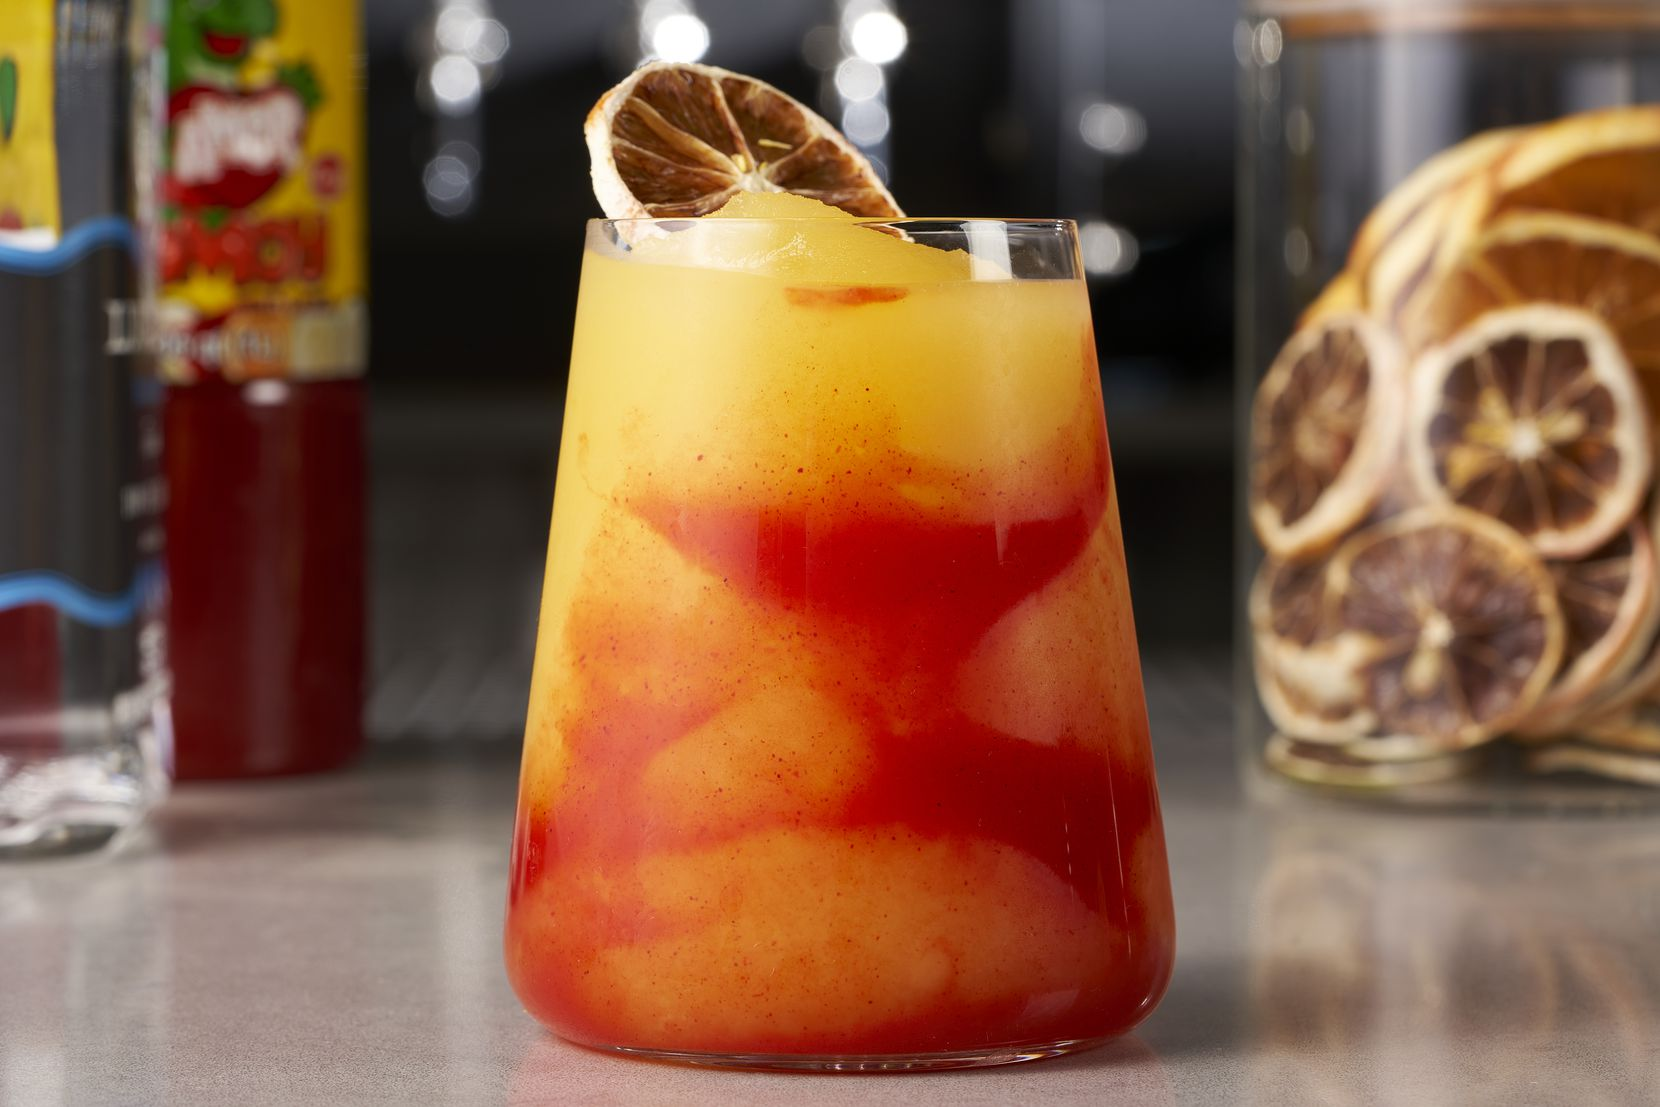 JAXON Texas Kitchen & Beer Garden, expected to open March 2 at AT&T Discovery District in downtown Dallas, will serve a frozen chamoy margarita. Chamoy is a Mexican condiment made from pickled fruit like apricot, mango and plum.